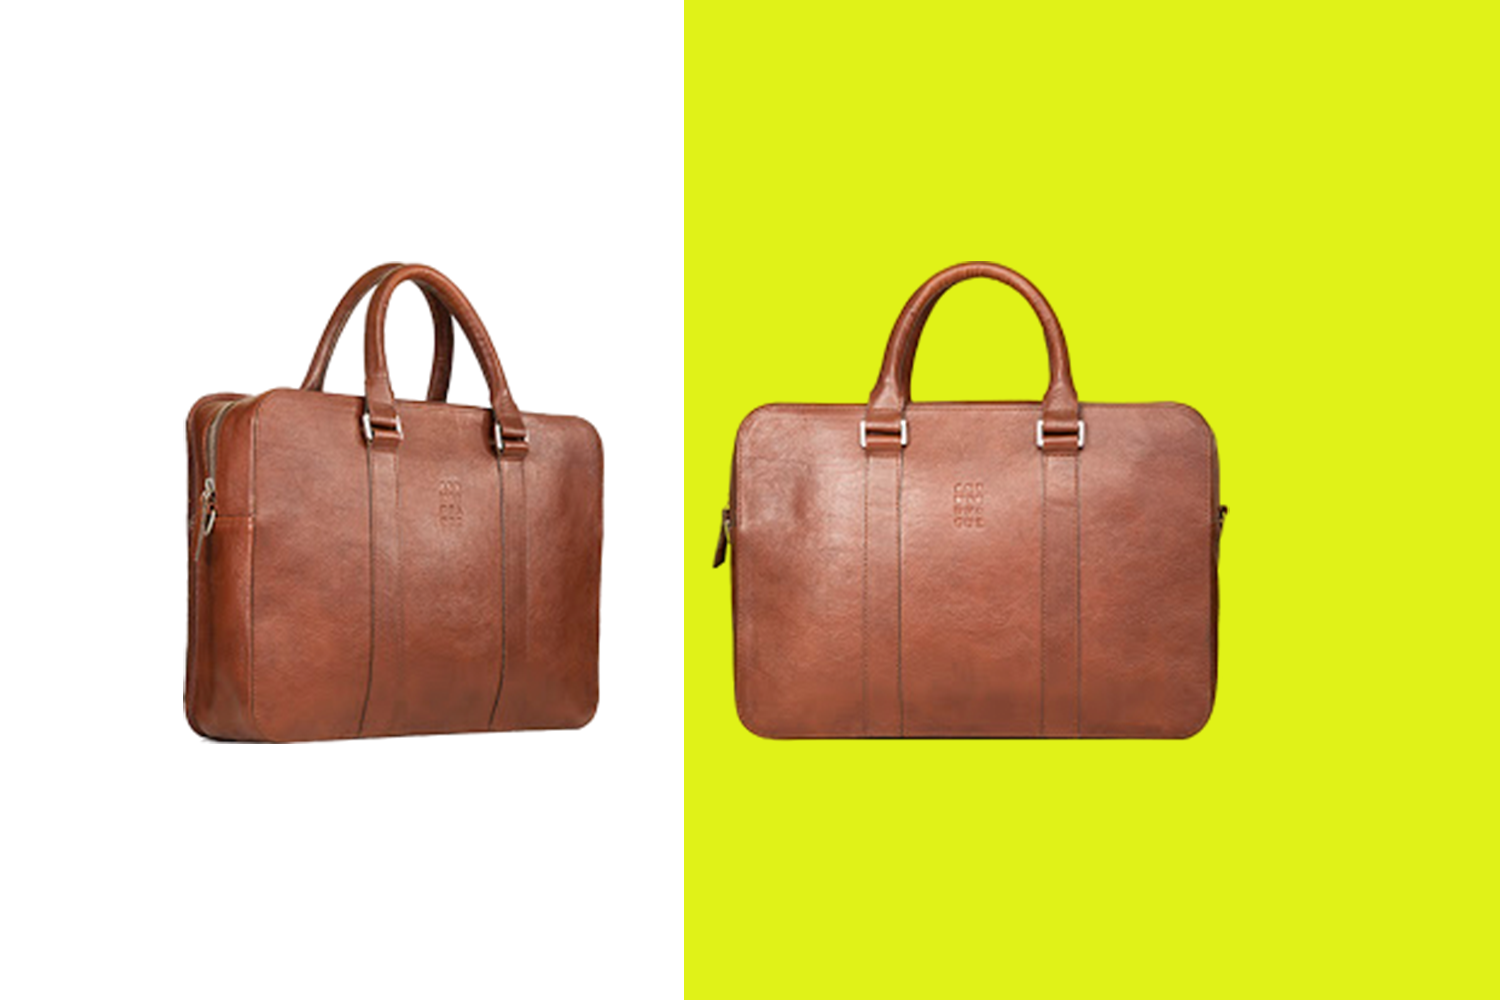 I will provide background remove and clipping path service